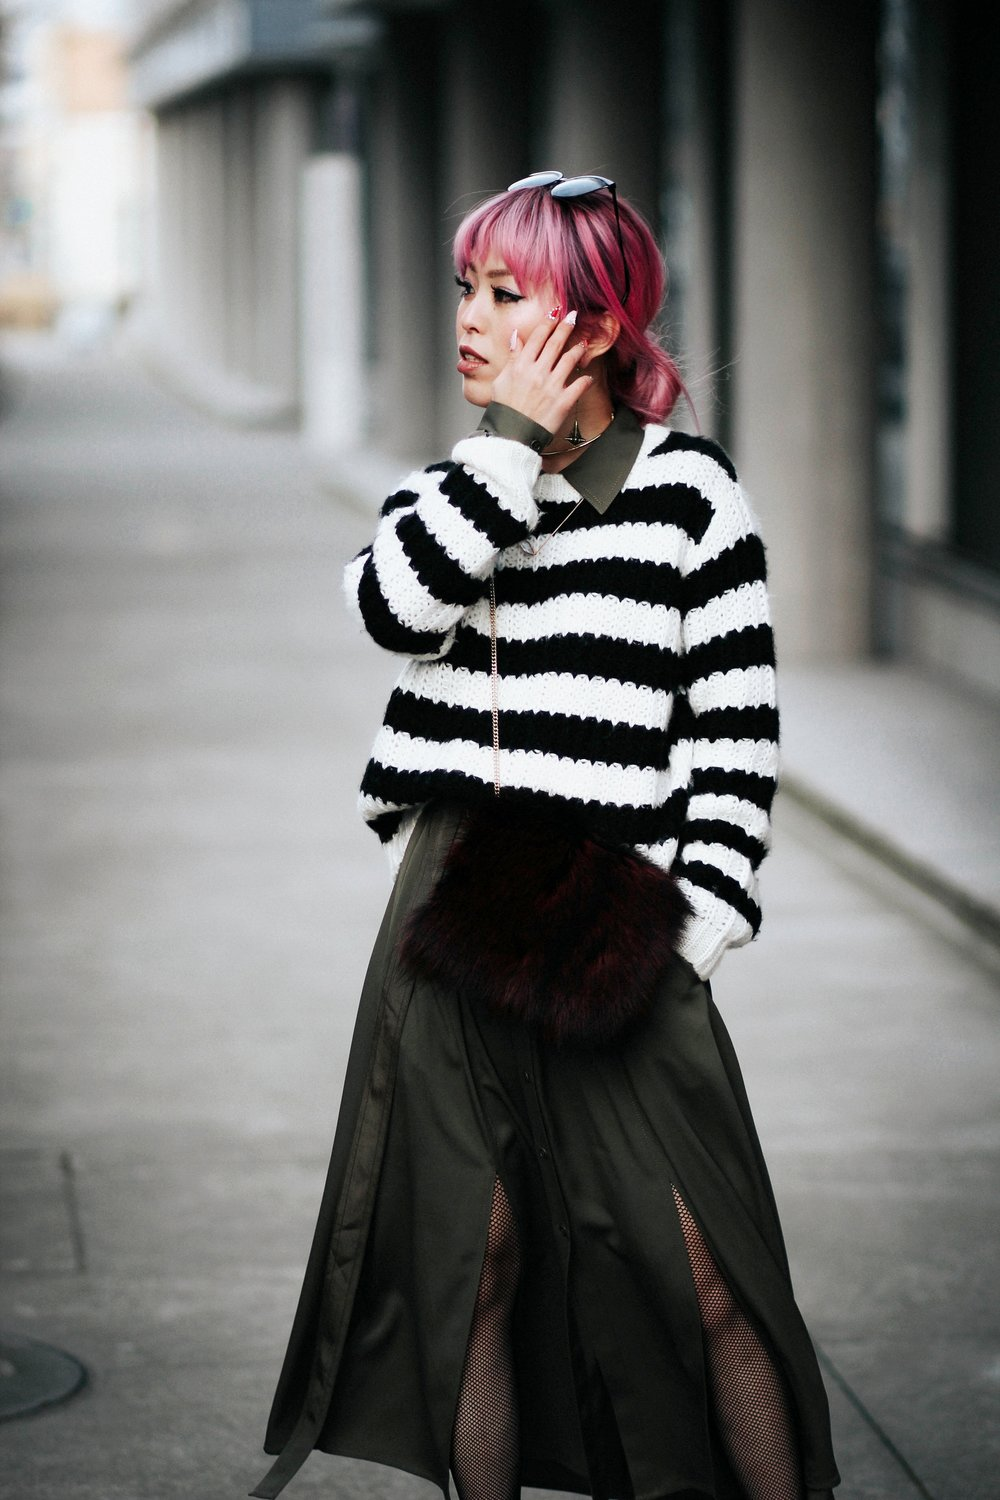 Who What Wear Striped Sweater_DVF Clarise Midi Shirt Dress_DVF Fur Bag_Kendra Scott Diana Shoulder Duster Earrings In Antique Brass_Amazon Fishnet Tights_ZARA ASYMMETRIC LEATHER HIGH HEEL SHOES_Aikas Love Closet_Seattle Fashion Blogger_japanese_Pink Hair 14